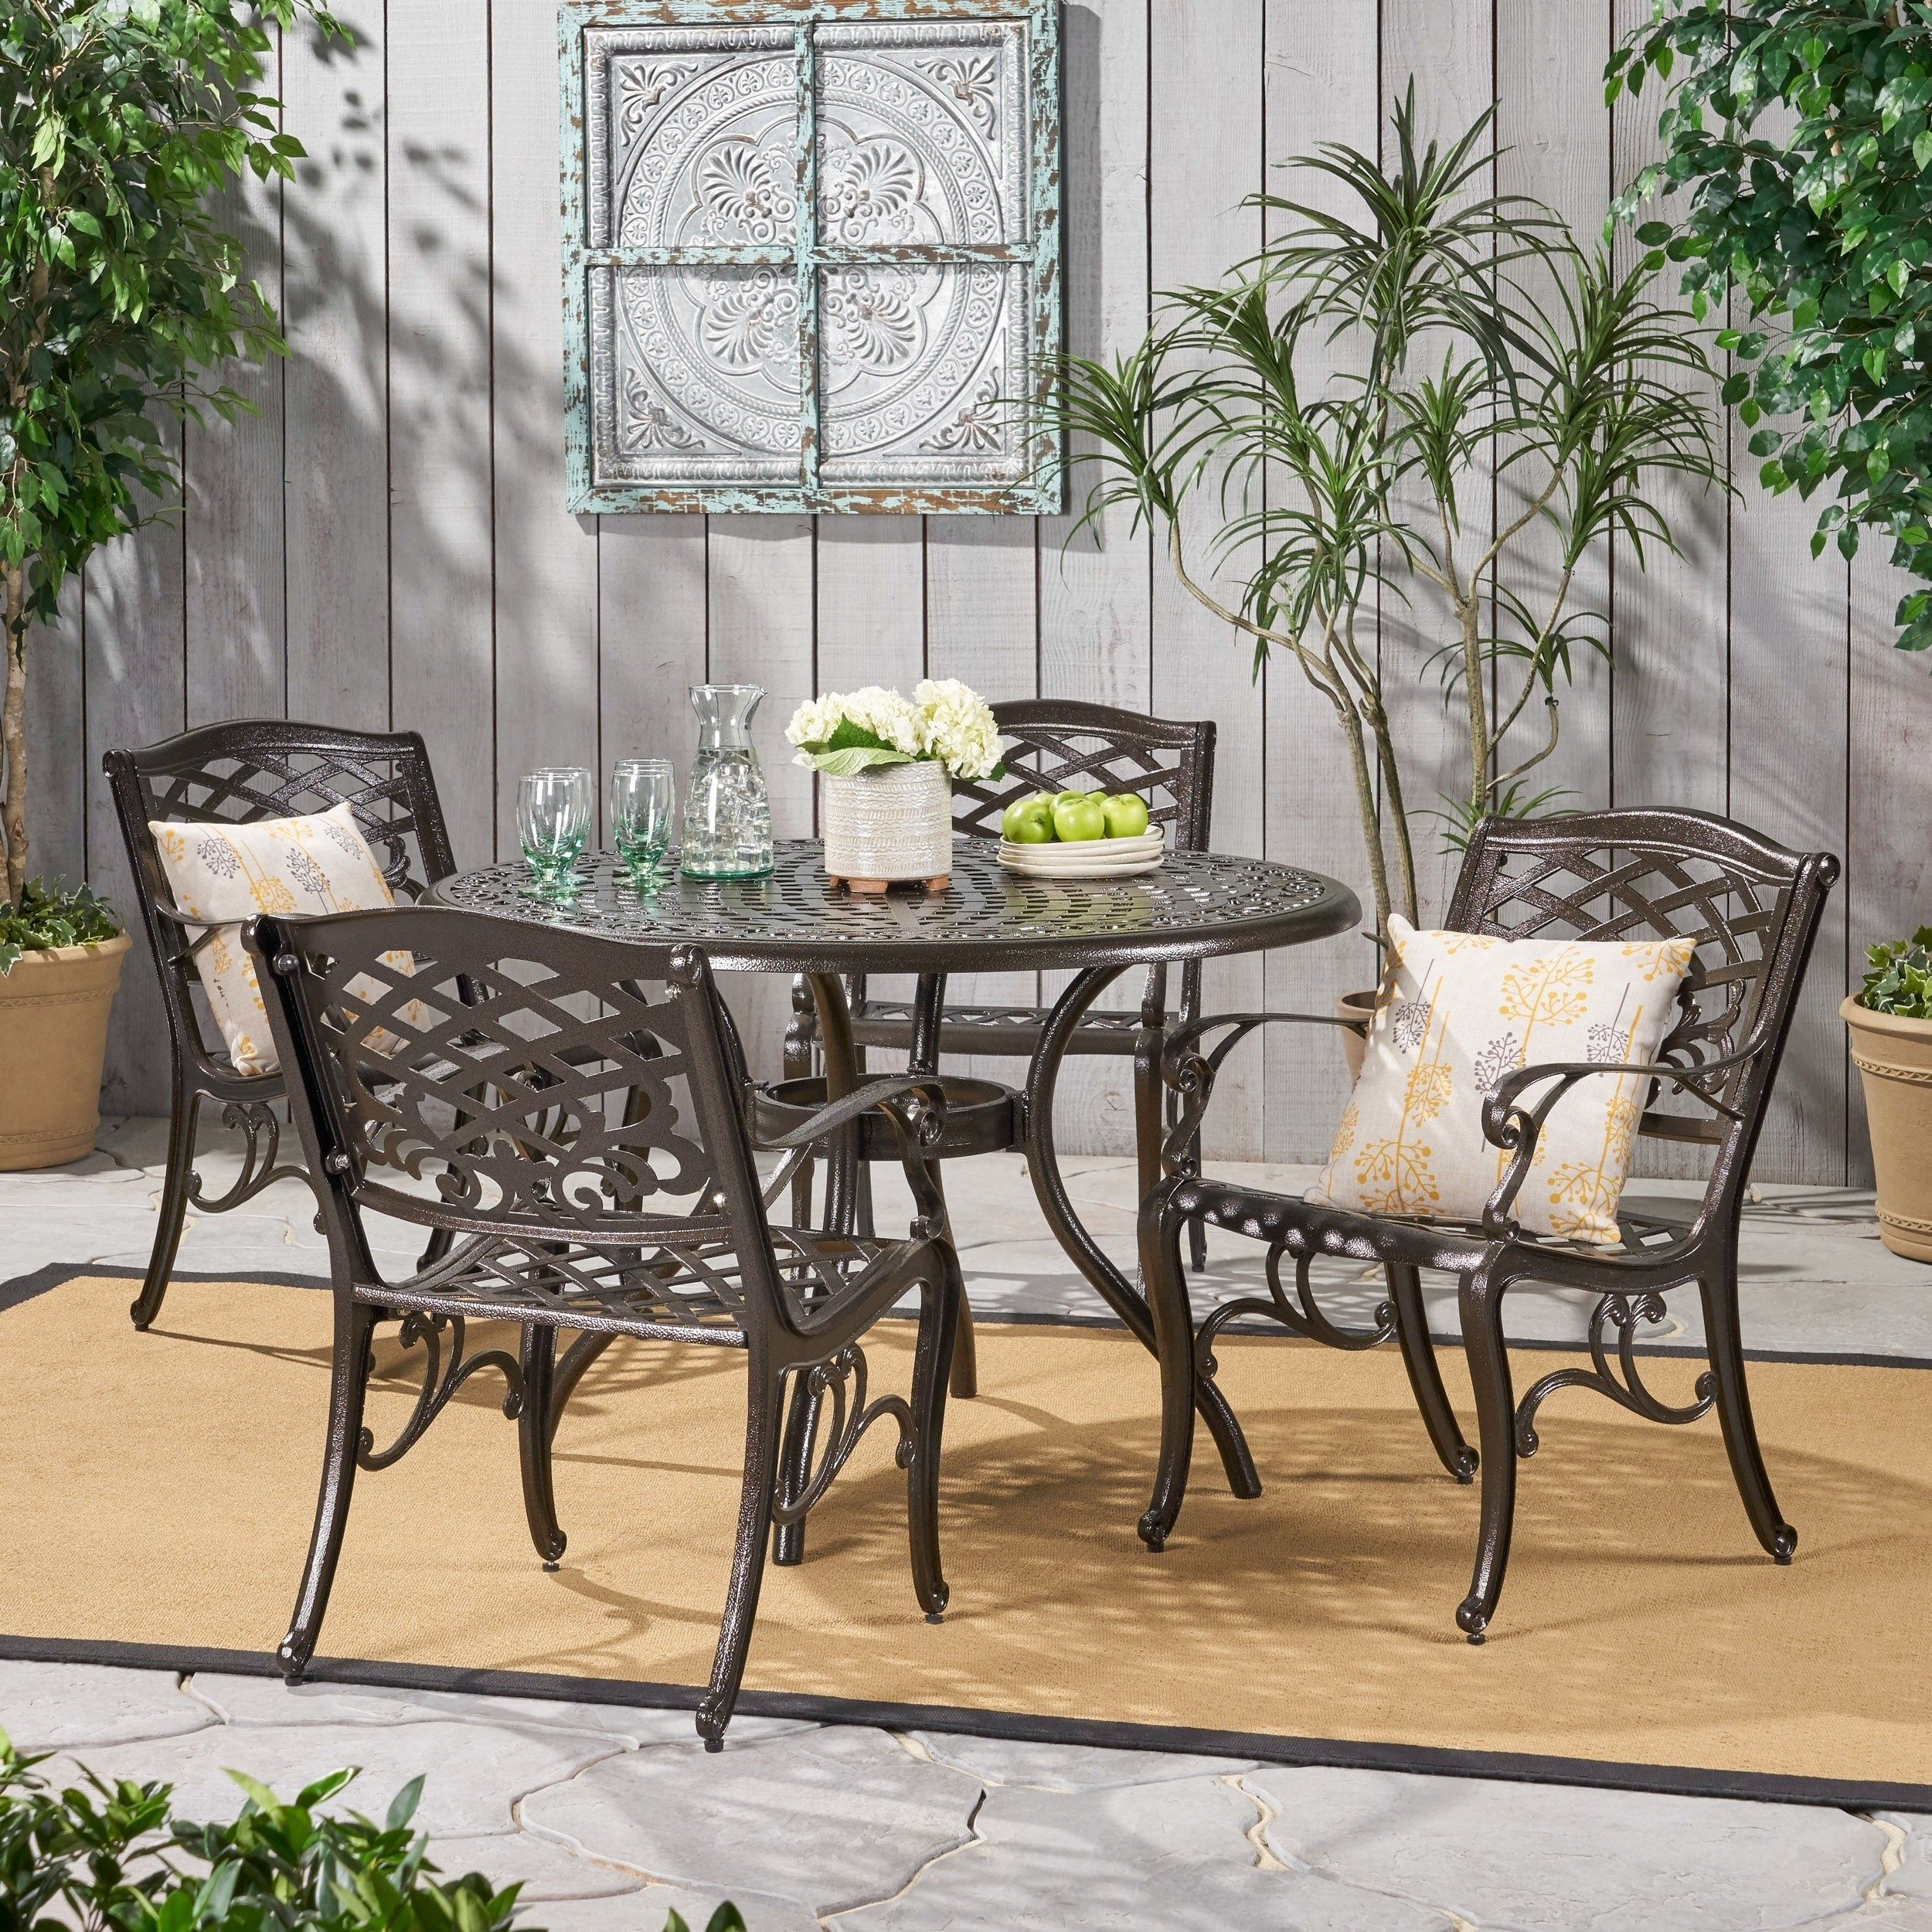 Ordinaire Hallandale Sarasota Cast Aluminum Bronze 5 Piece Outdoor Dining Set By  Christopher Knight Home